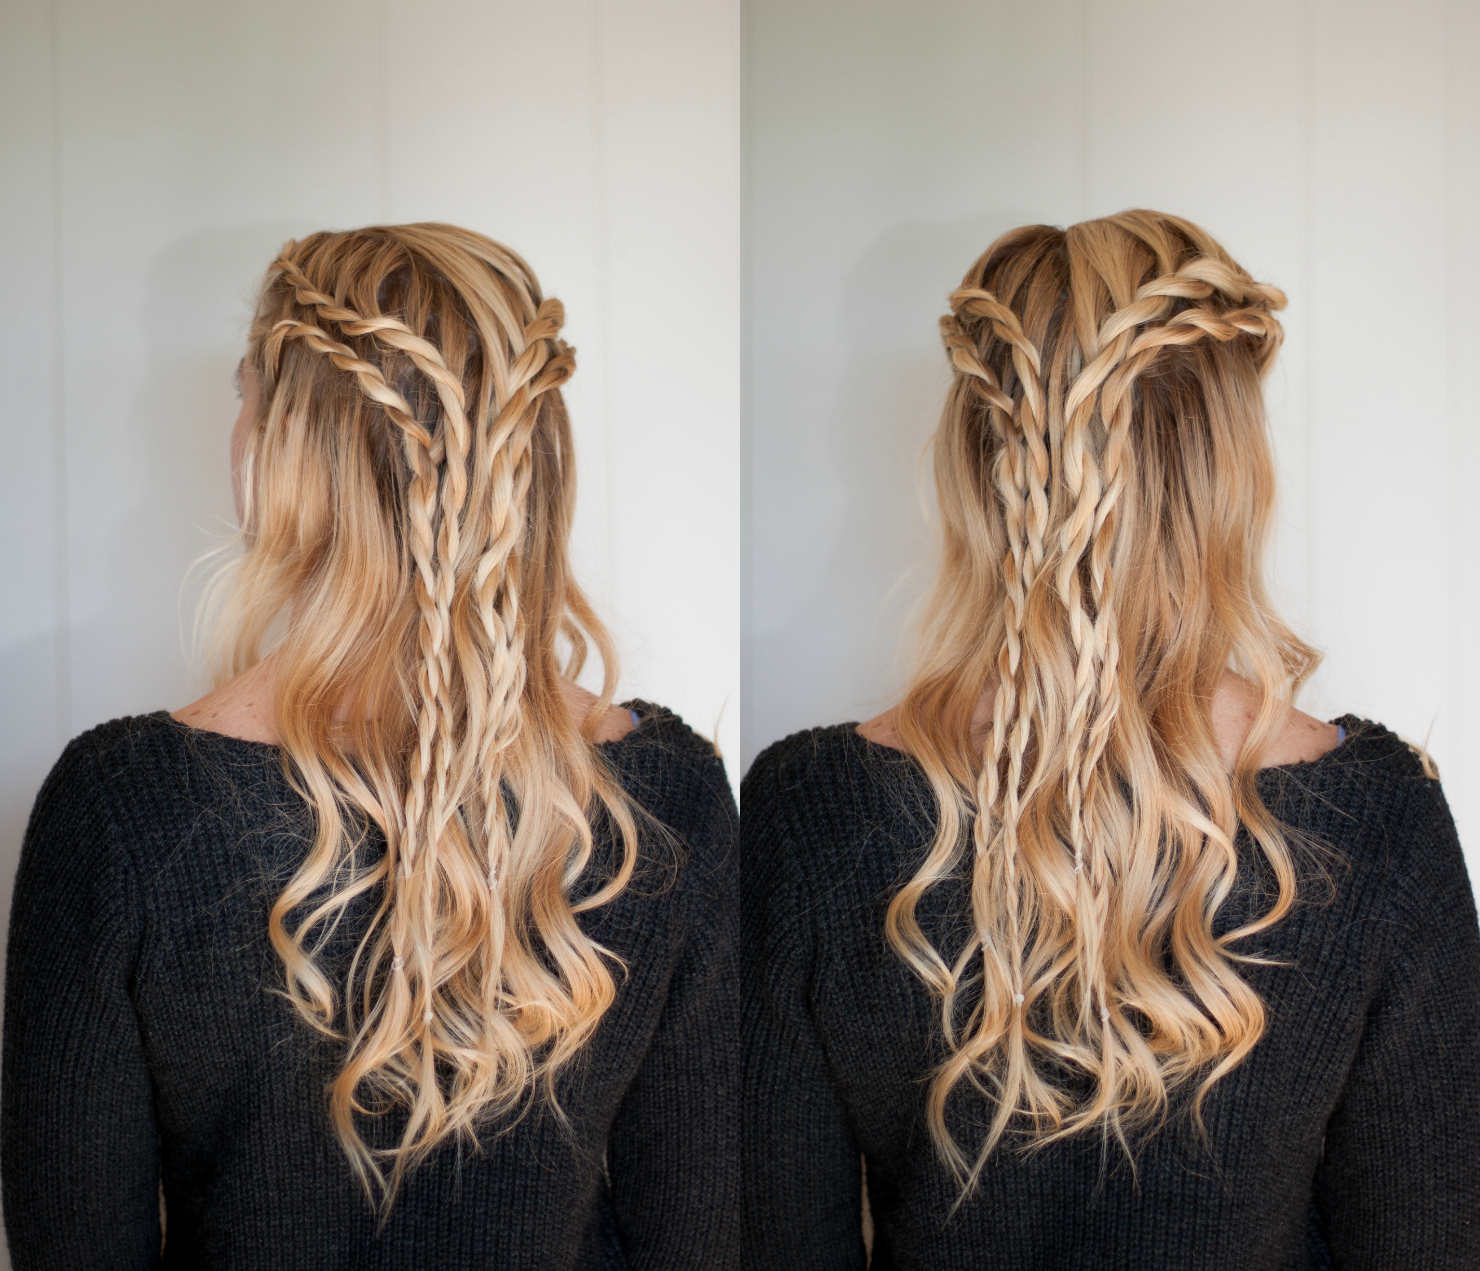 5 Date Night Hairstyles